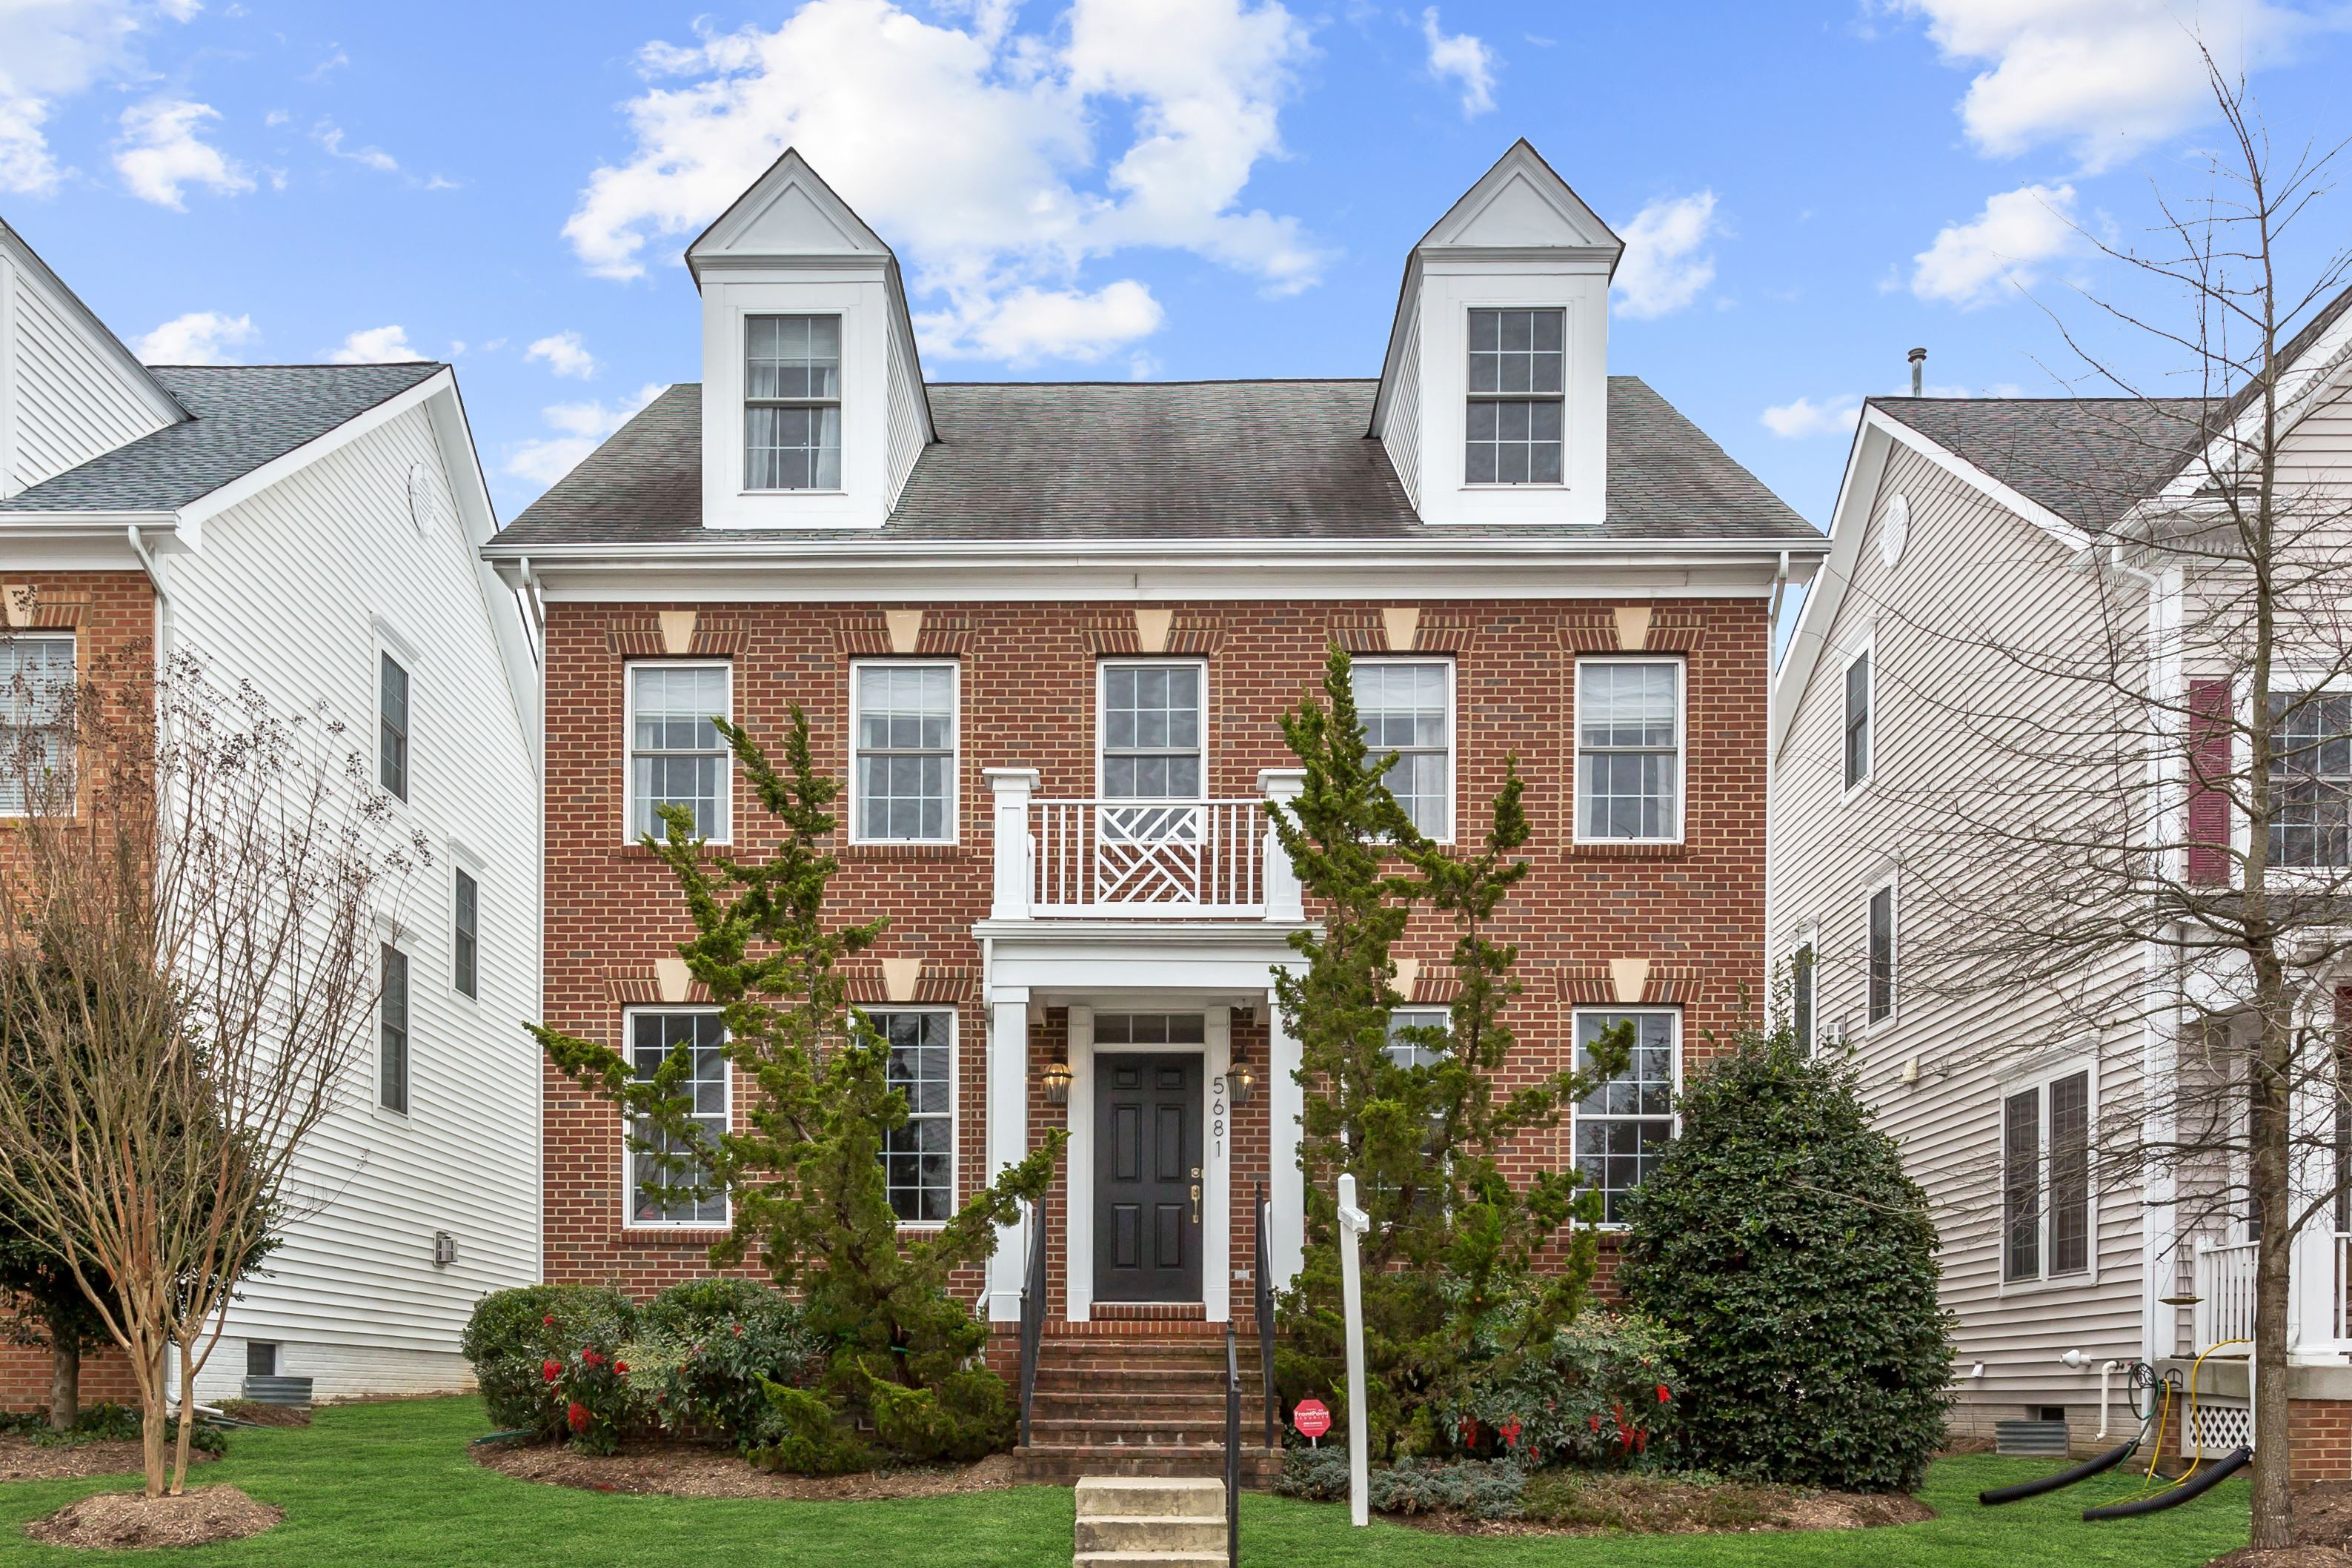 NEW LISTING: Spacious 4BD Colonial Home in Great Centreville, VA Community